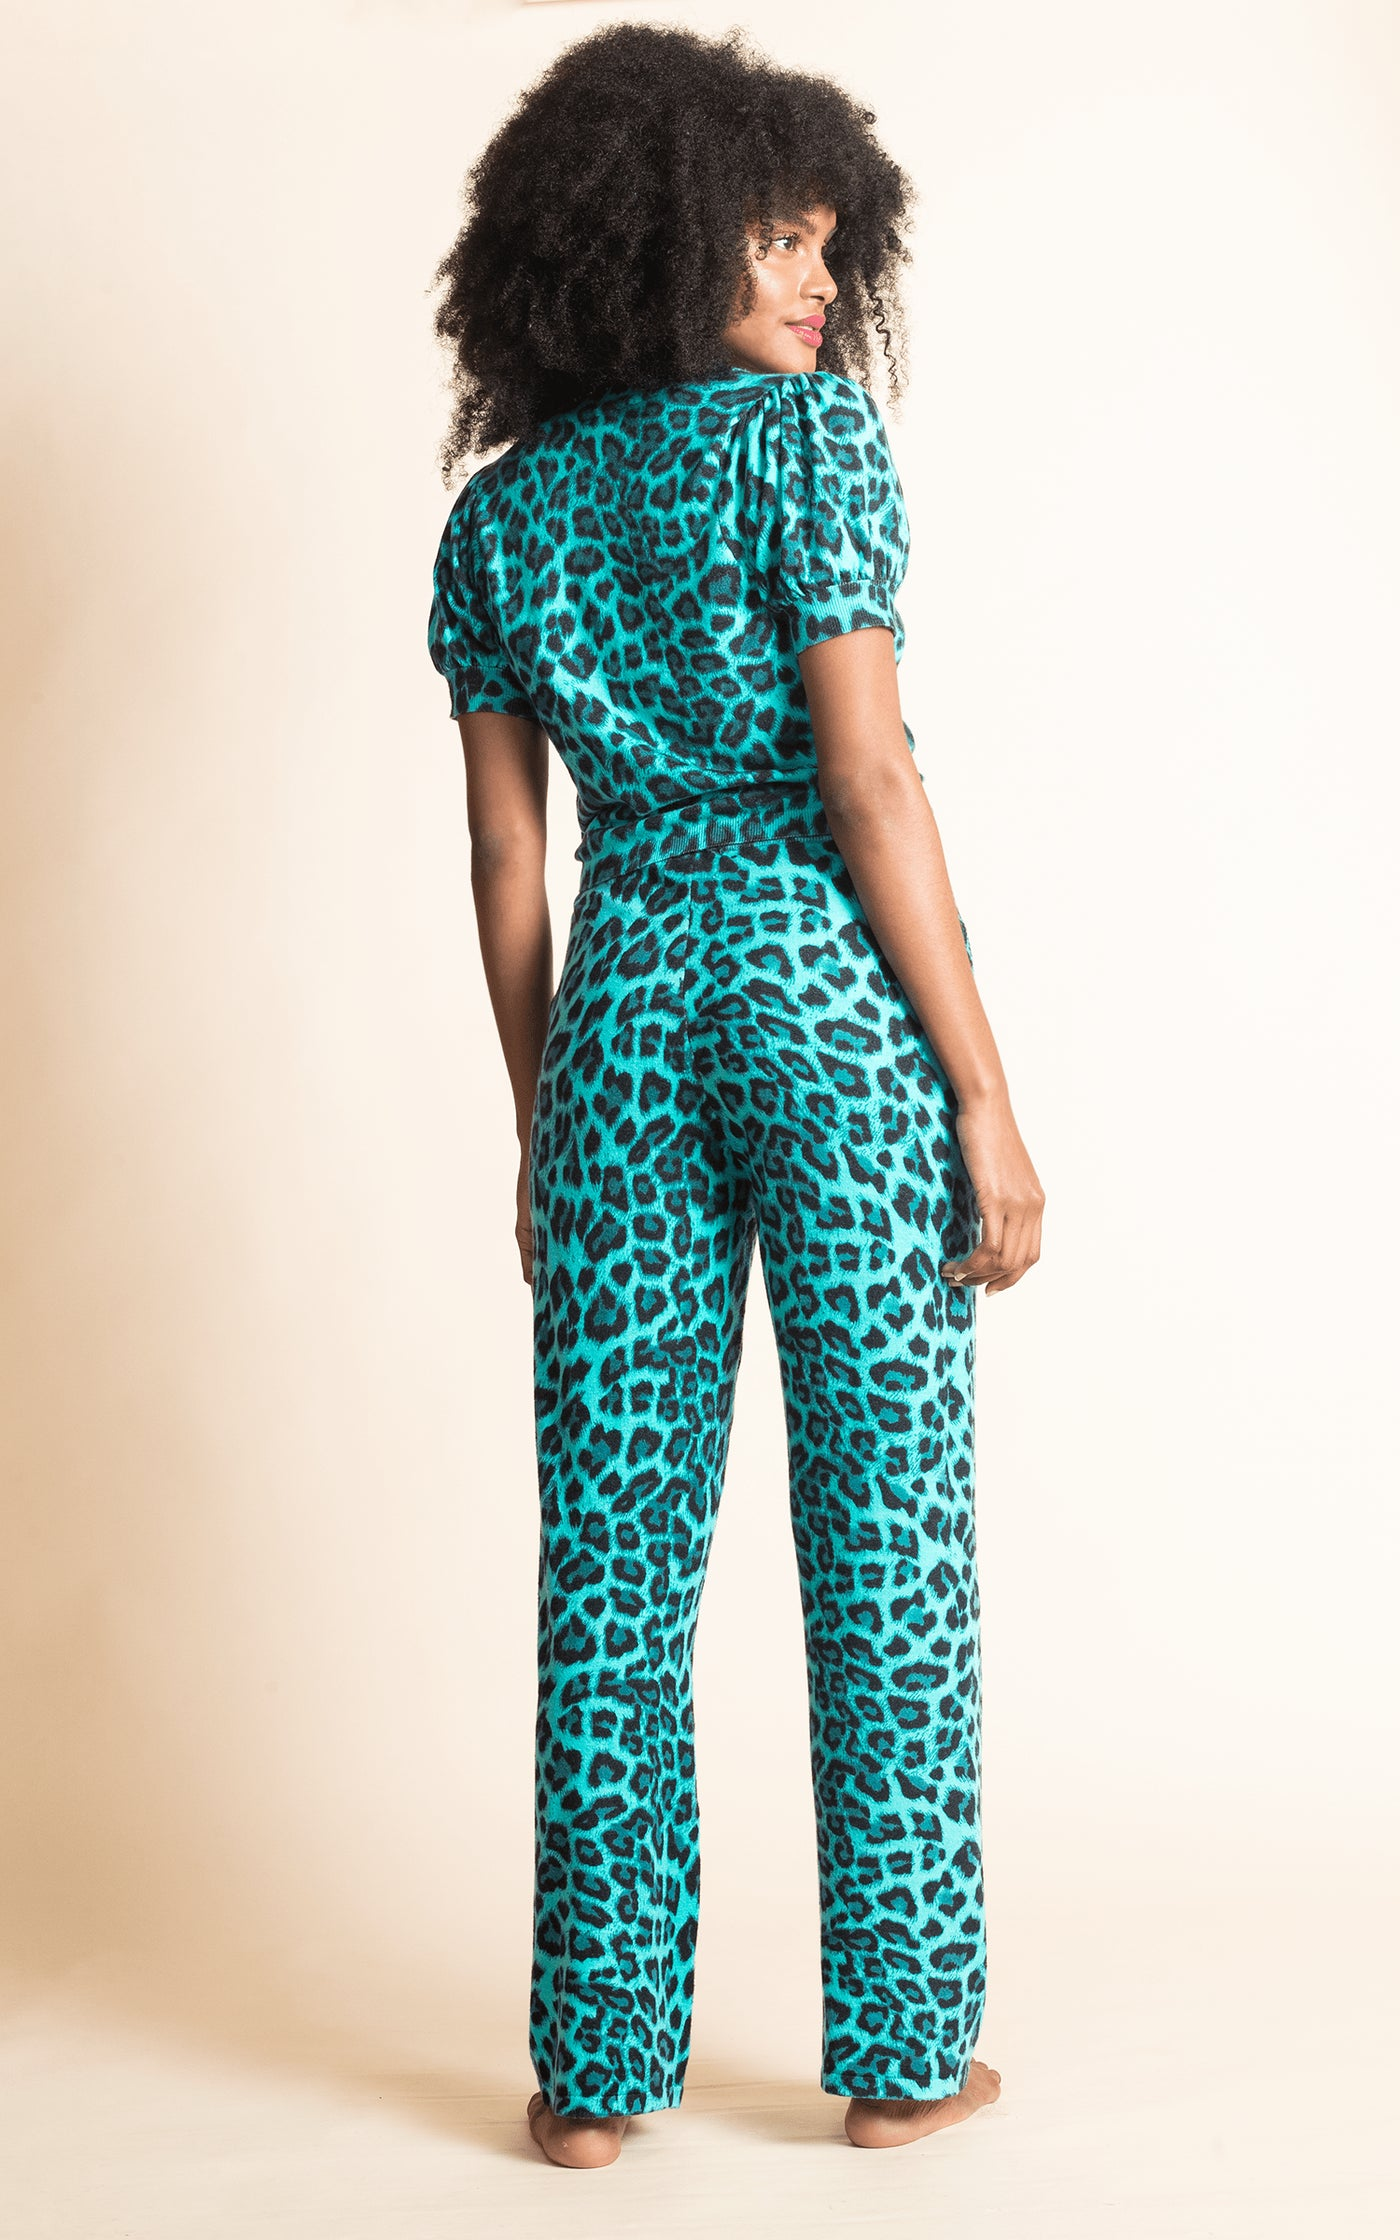 Oslo Knitted Trouser in Green Leopard